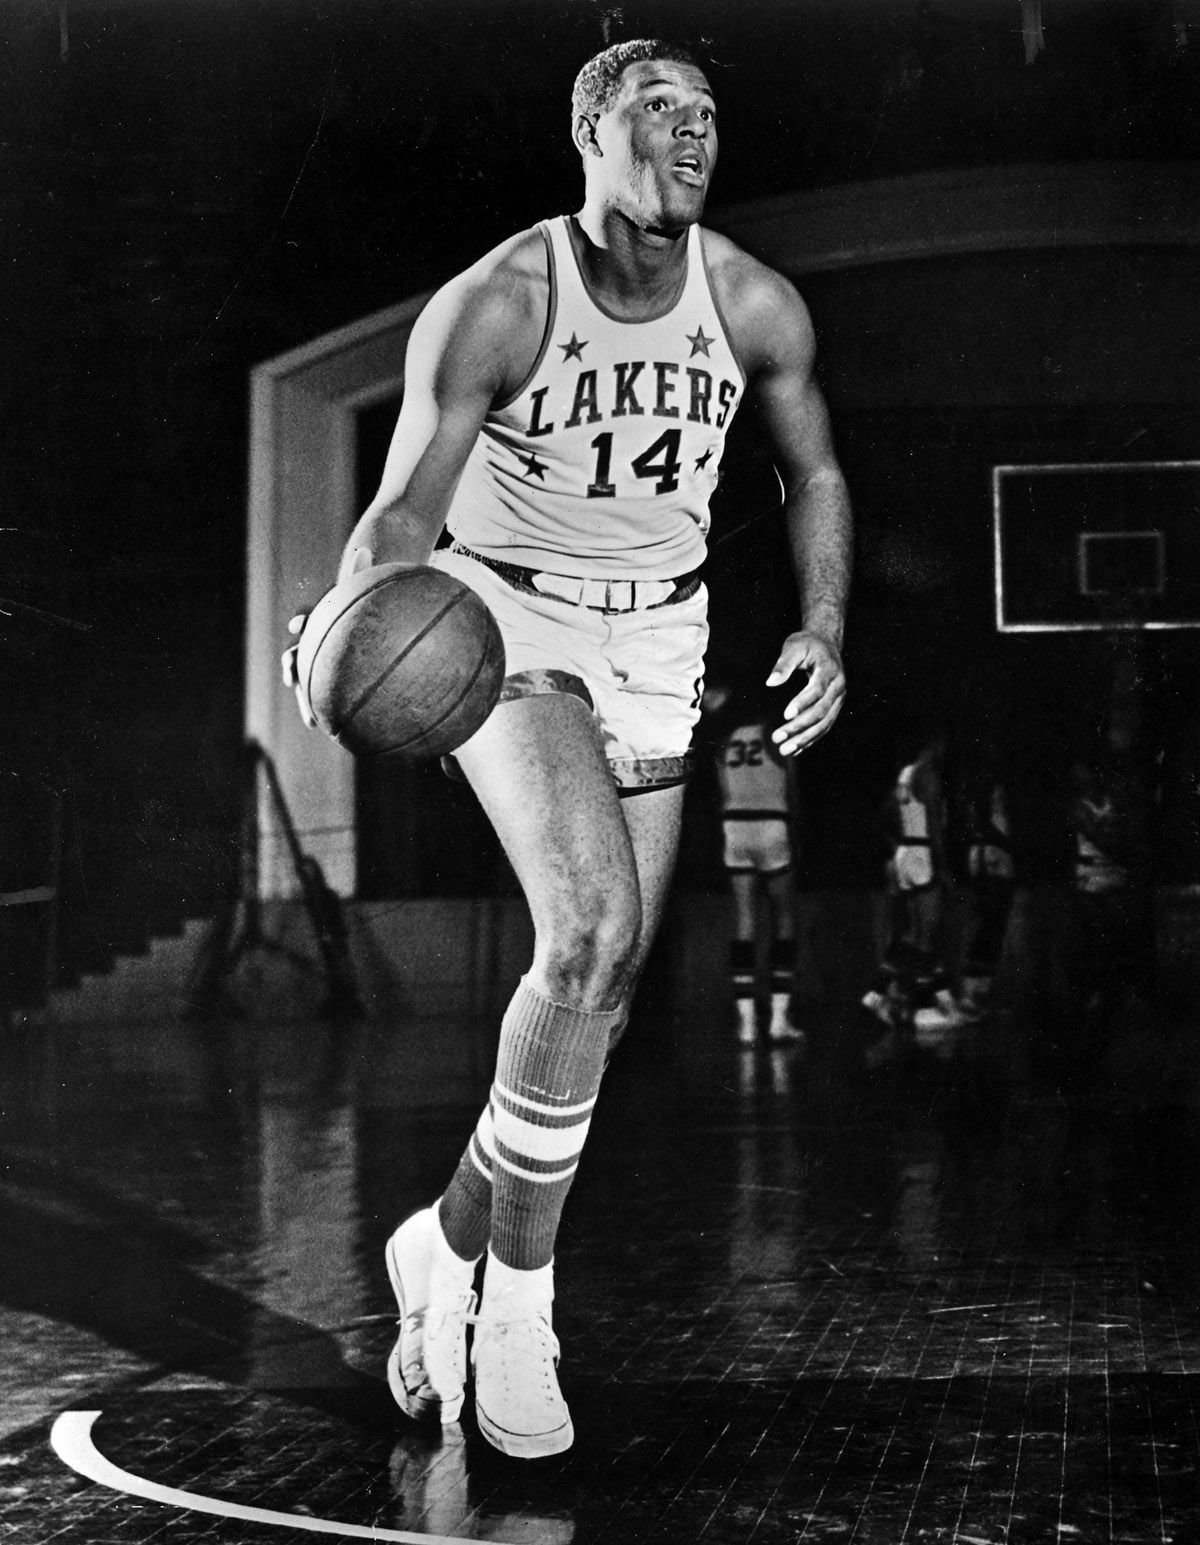 April 22, 1958...and with the first pick of the 1958 NBA Draft, the Minneapolis Lakers select, Elgin Baylor, of Seattle University. Baylor would go on to average 25 points, 15 rebounds and 4 assists in his rookie season.